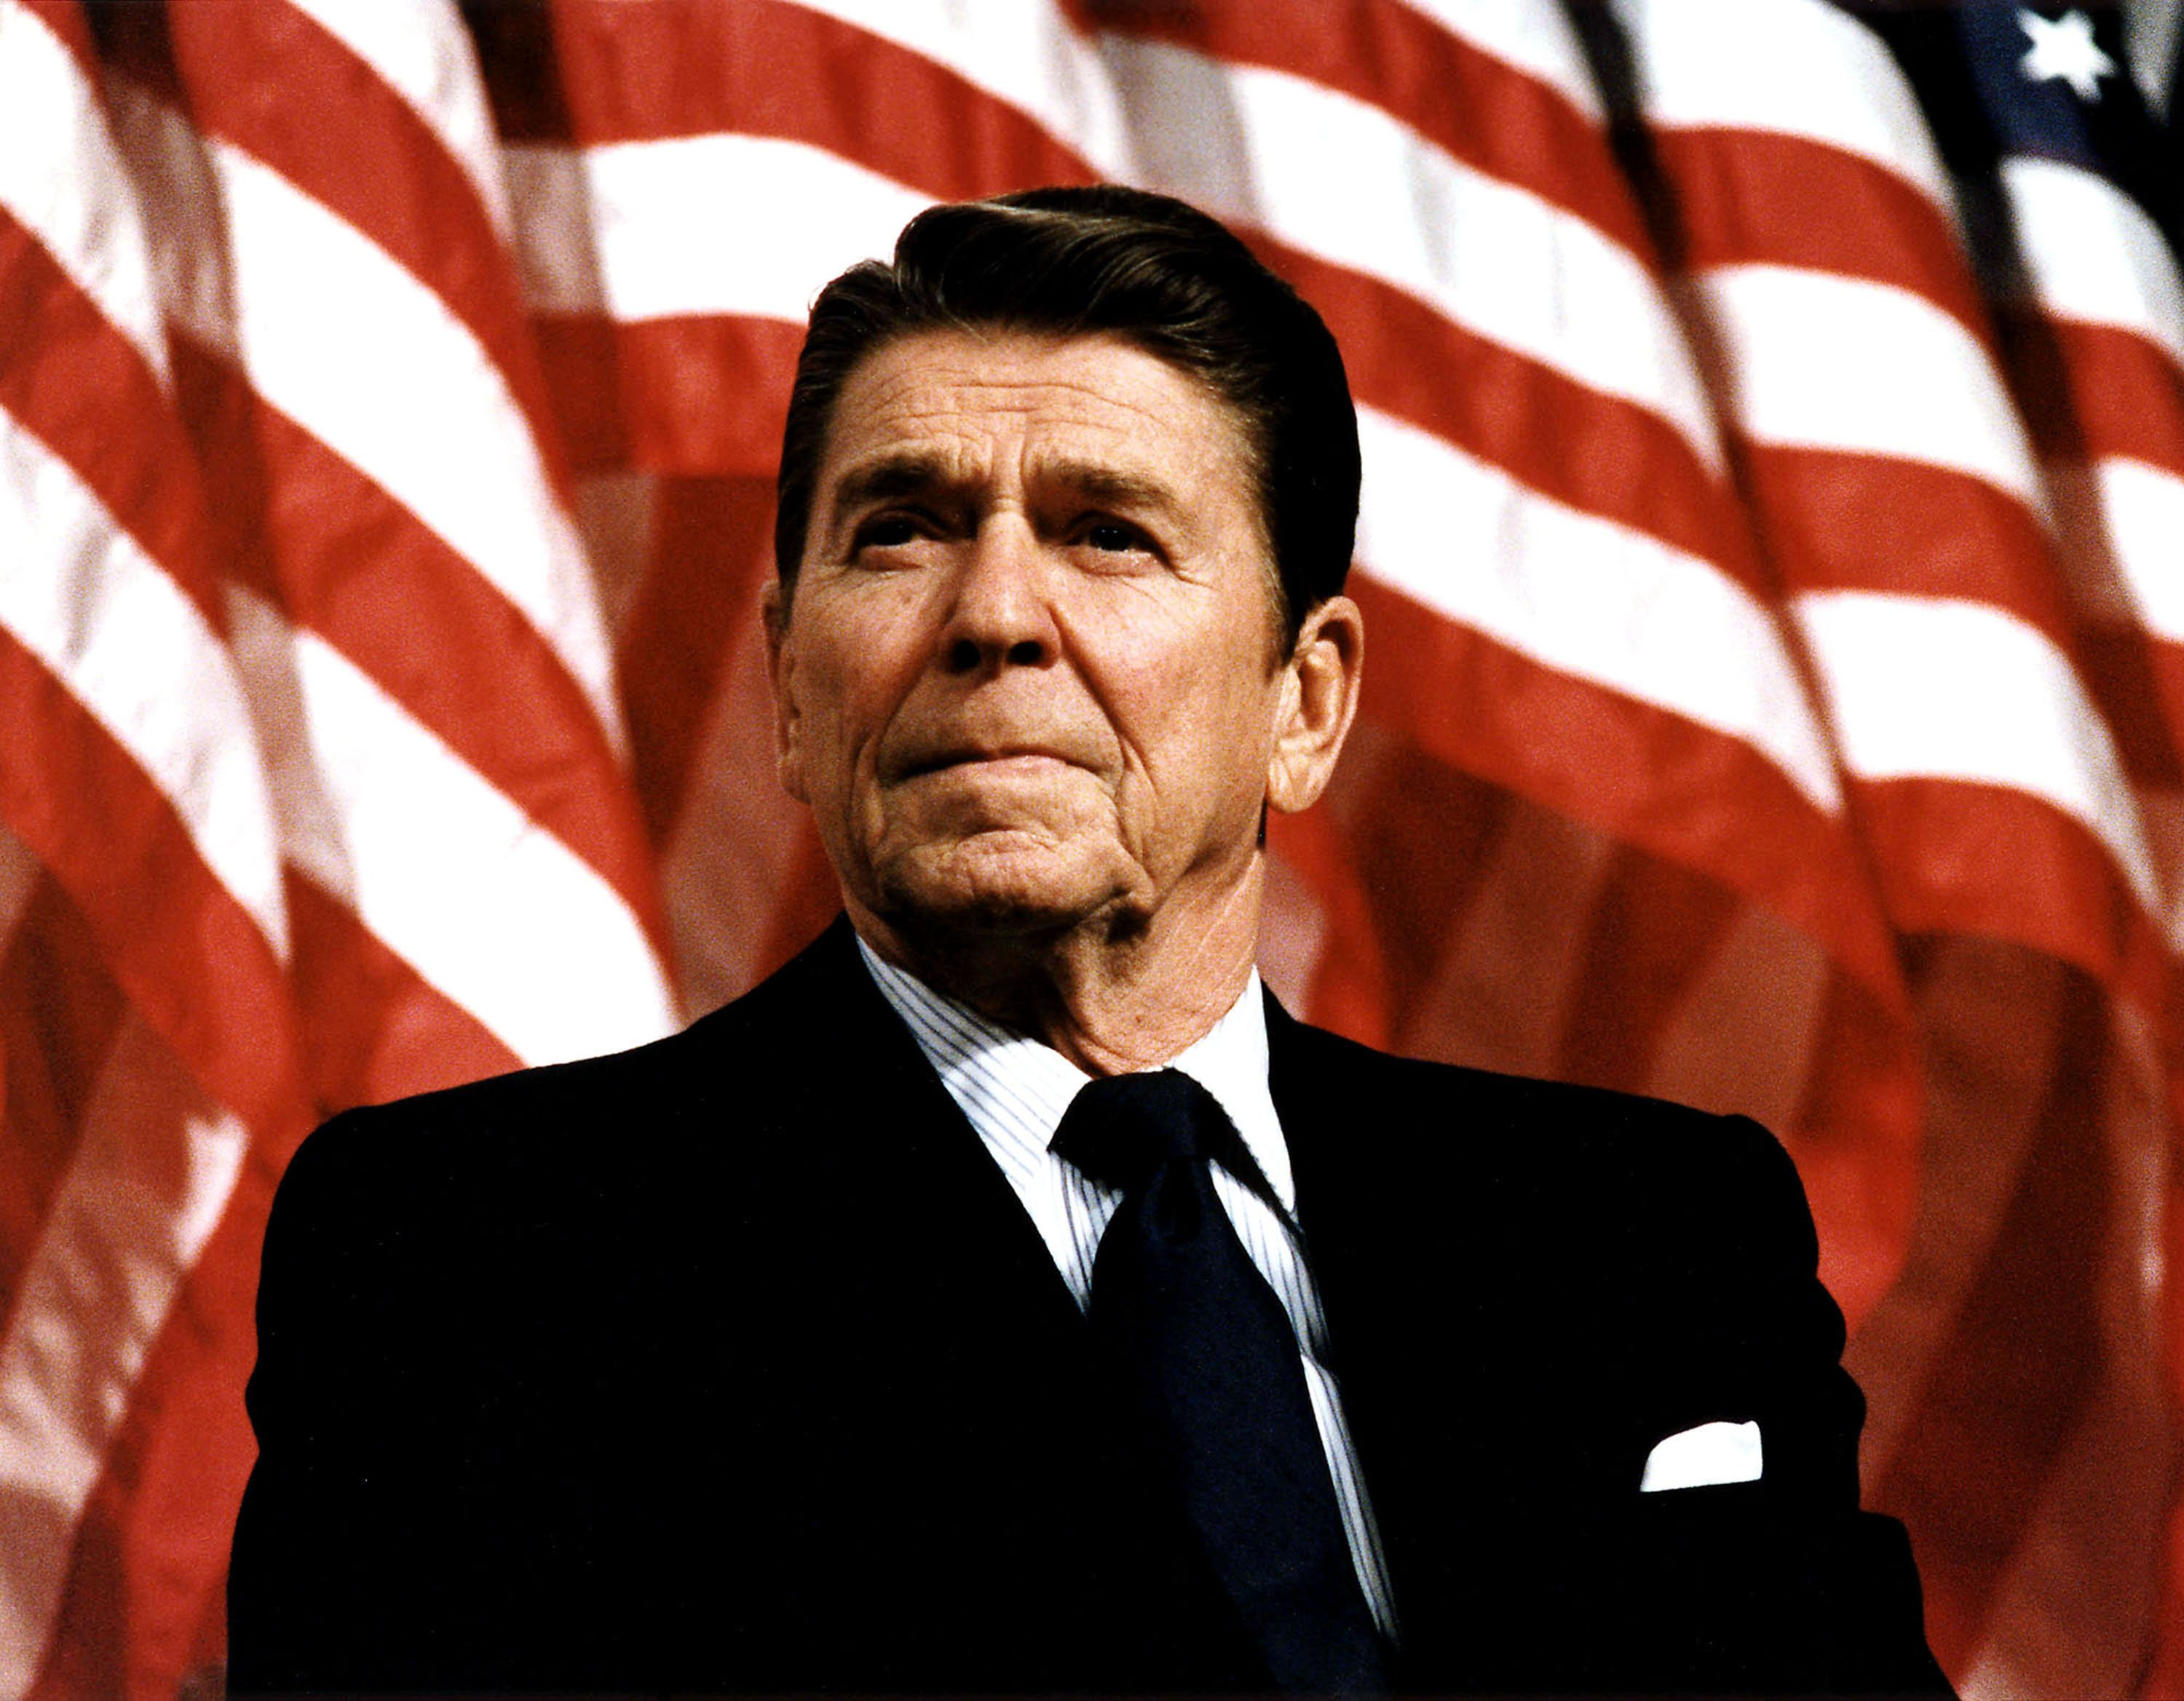 President Ronald Reagan at Durenberger Republican convention Rally, 1982. | Source: Getty Images